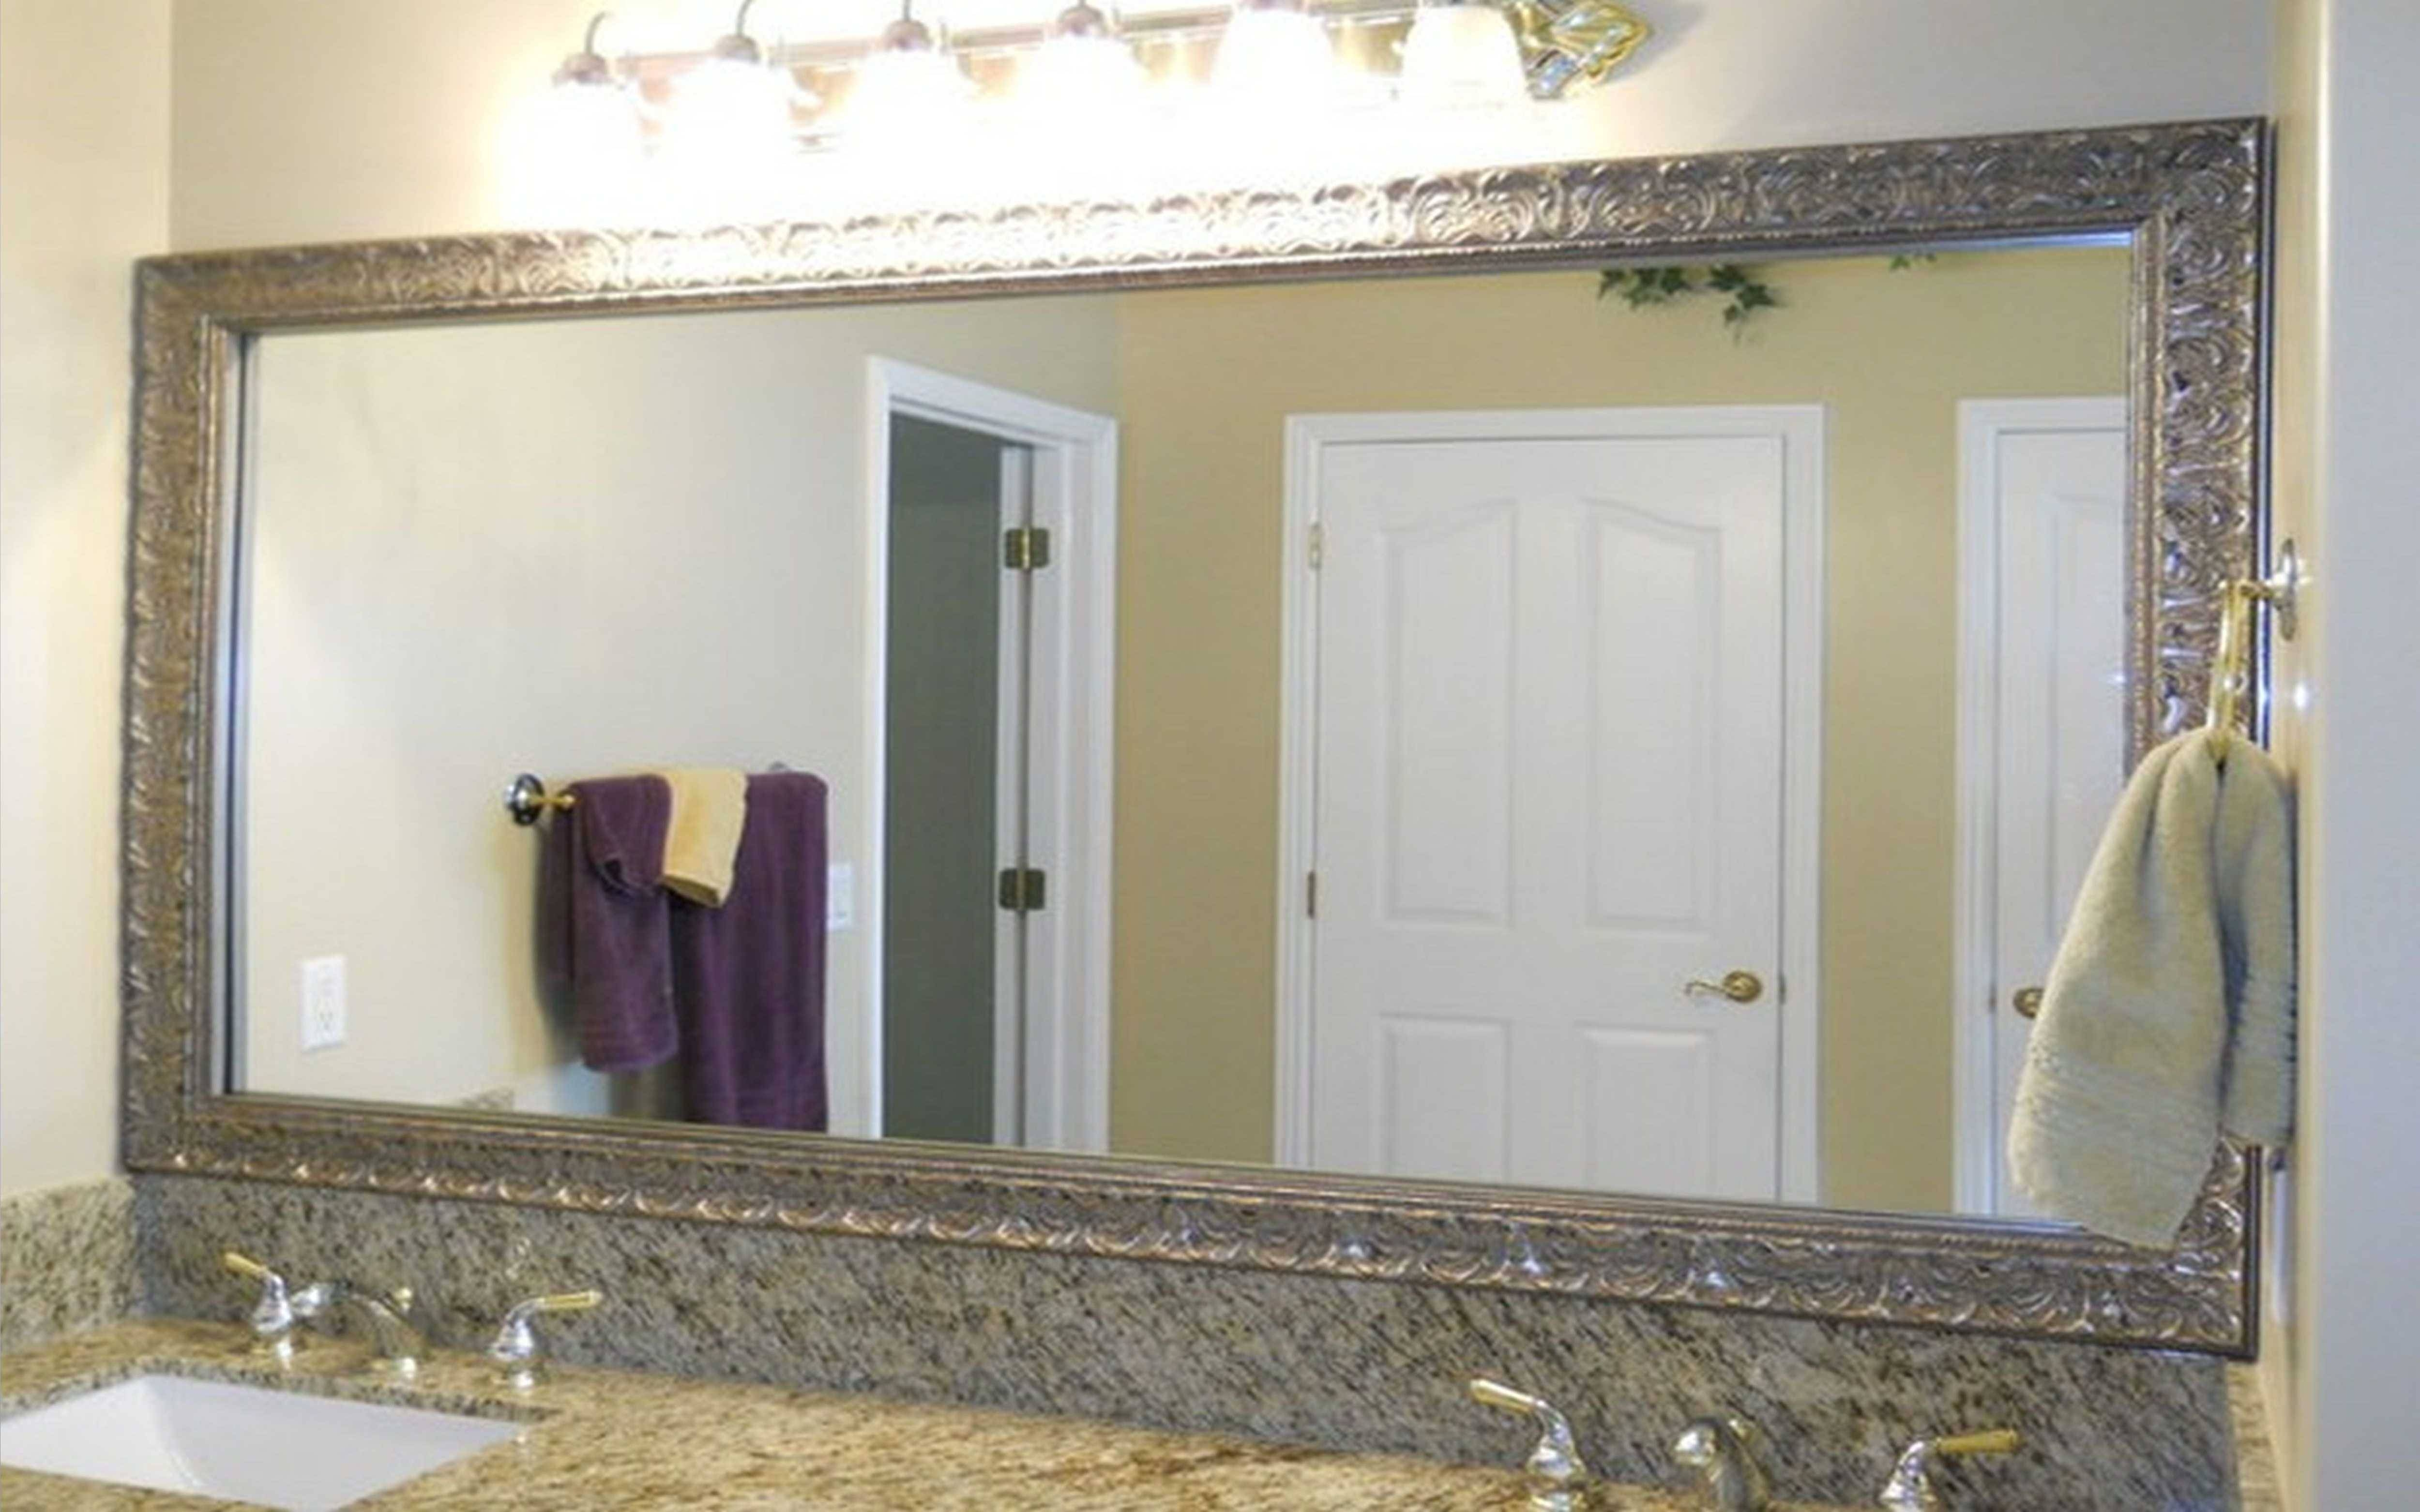 Bathroom: Framing Large Bathroom Mirror | Oversized Wall Mirror With Regard To Silver Rectangular Mirrors (View 5 of 25)